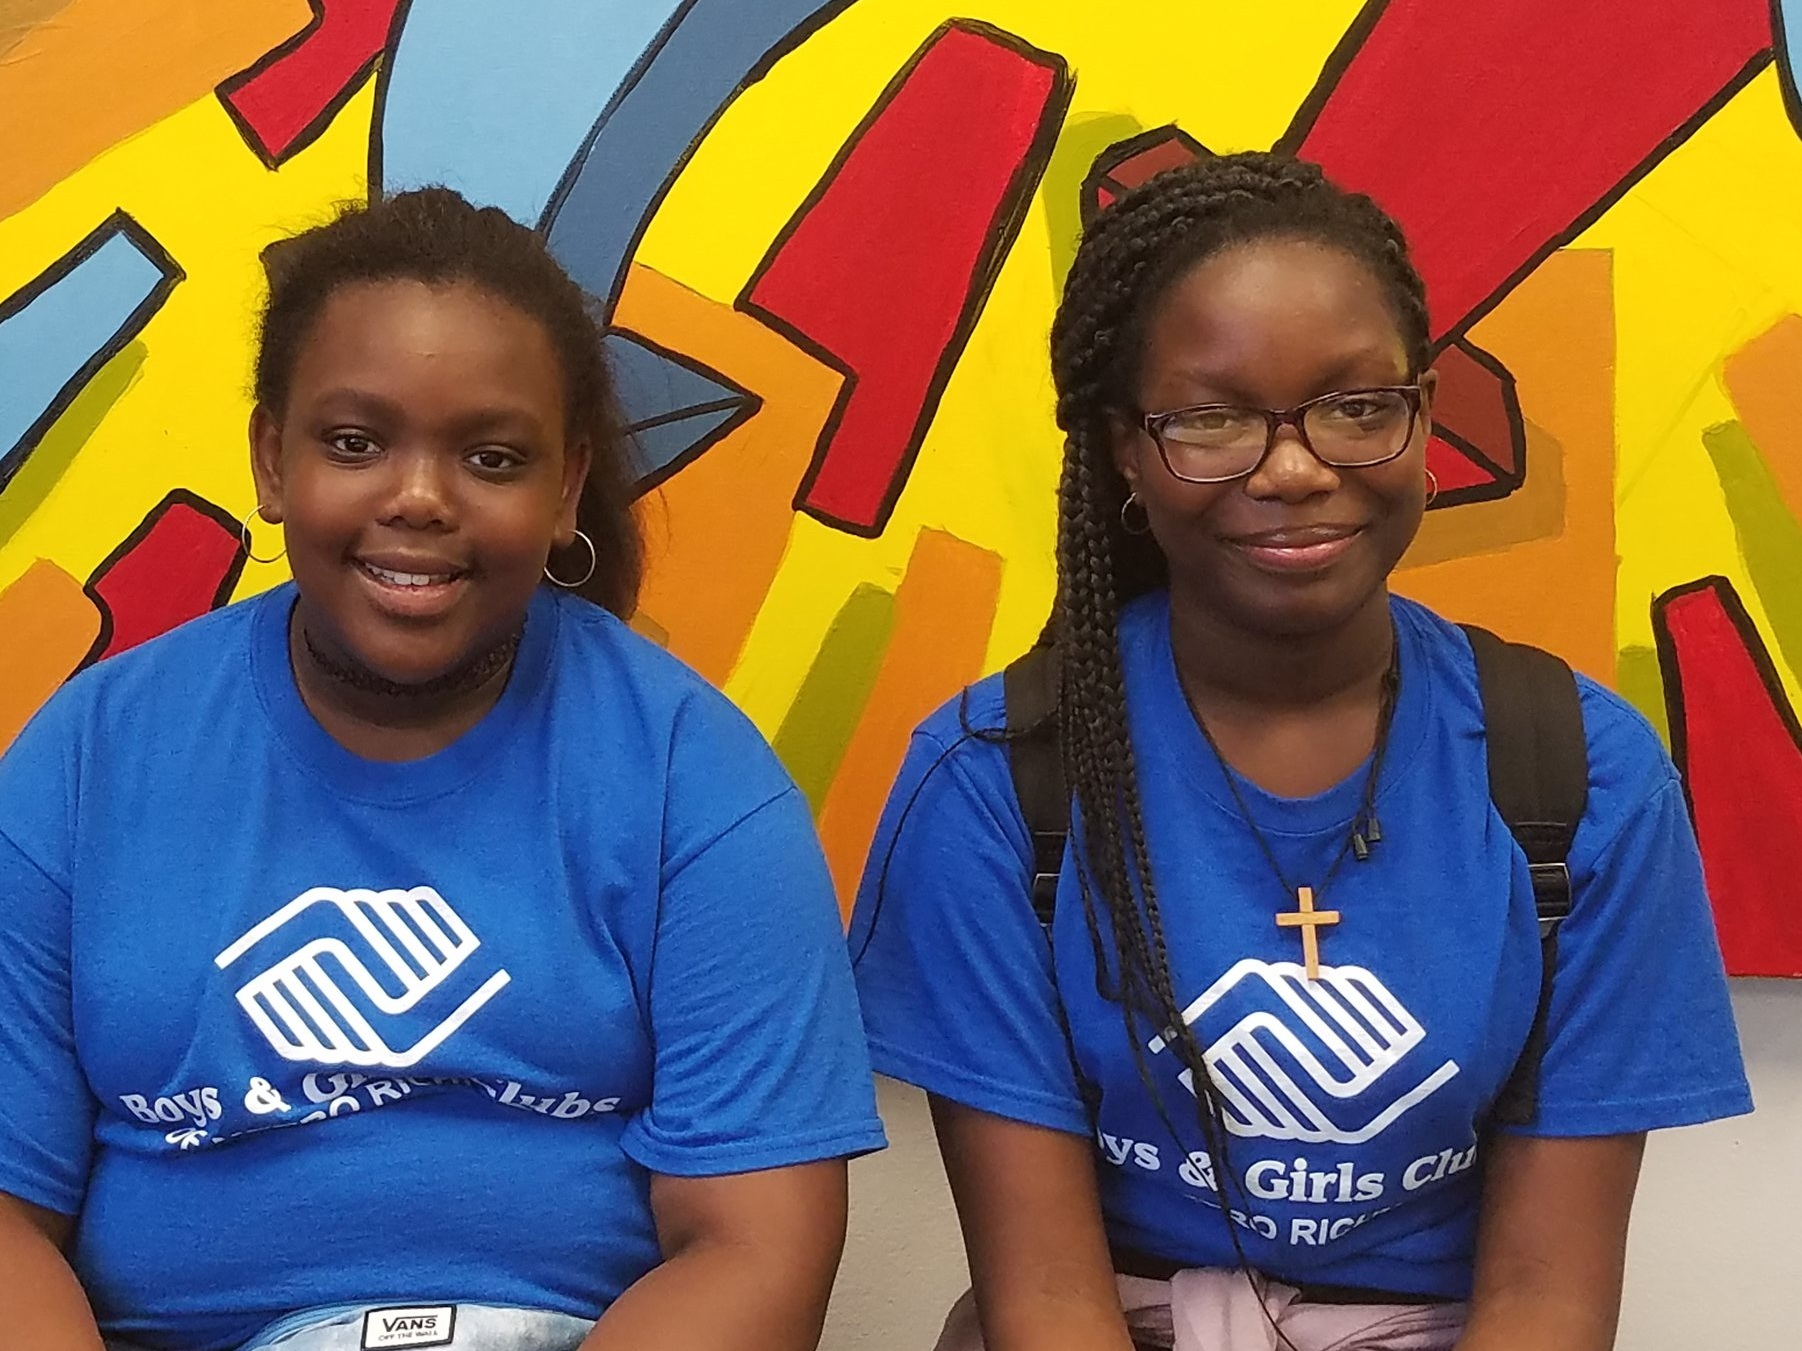 Marylord (right) and Jasmine (left), both from Southside, were regional finalists in the National Arts contests